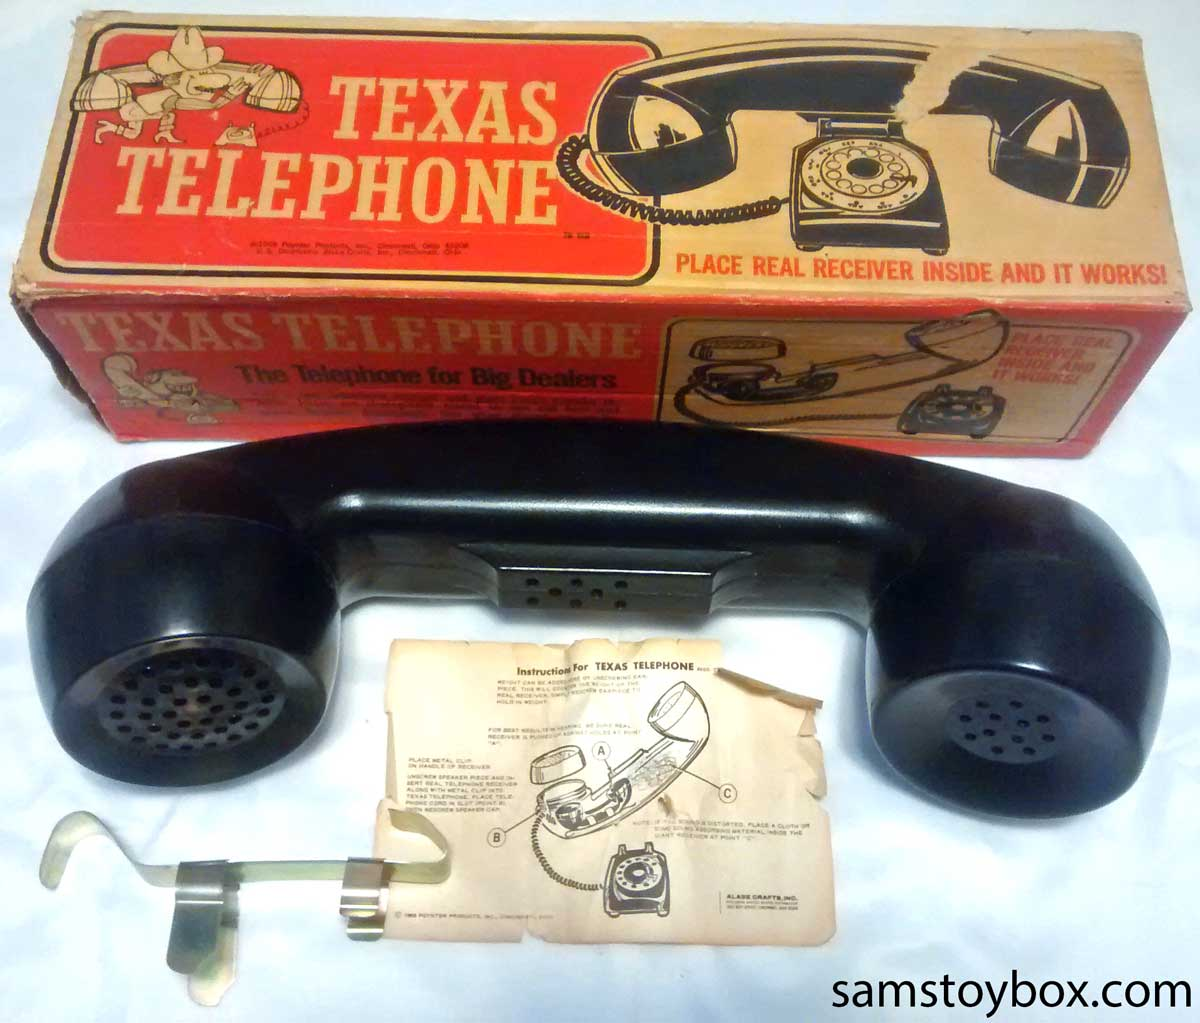 Texas Telephone by Poynter Products